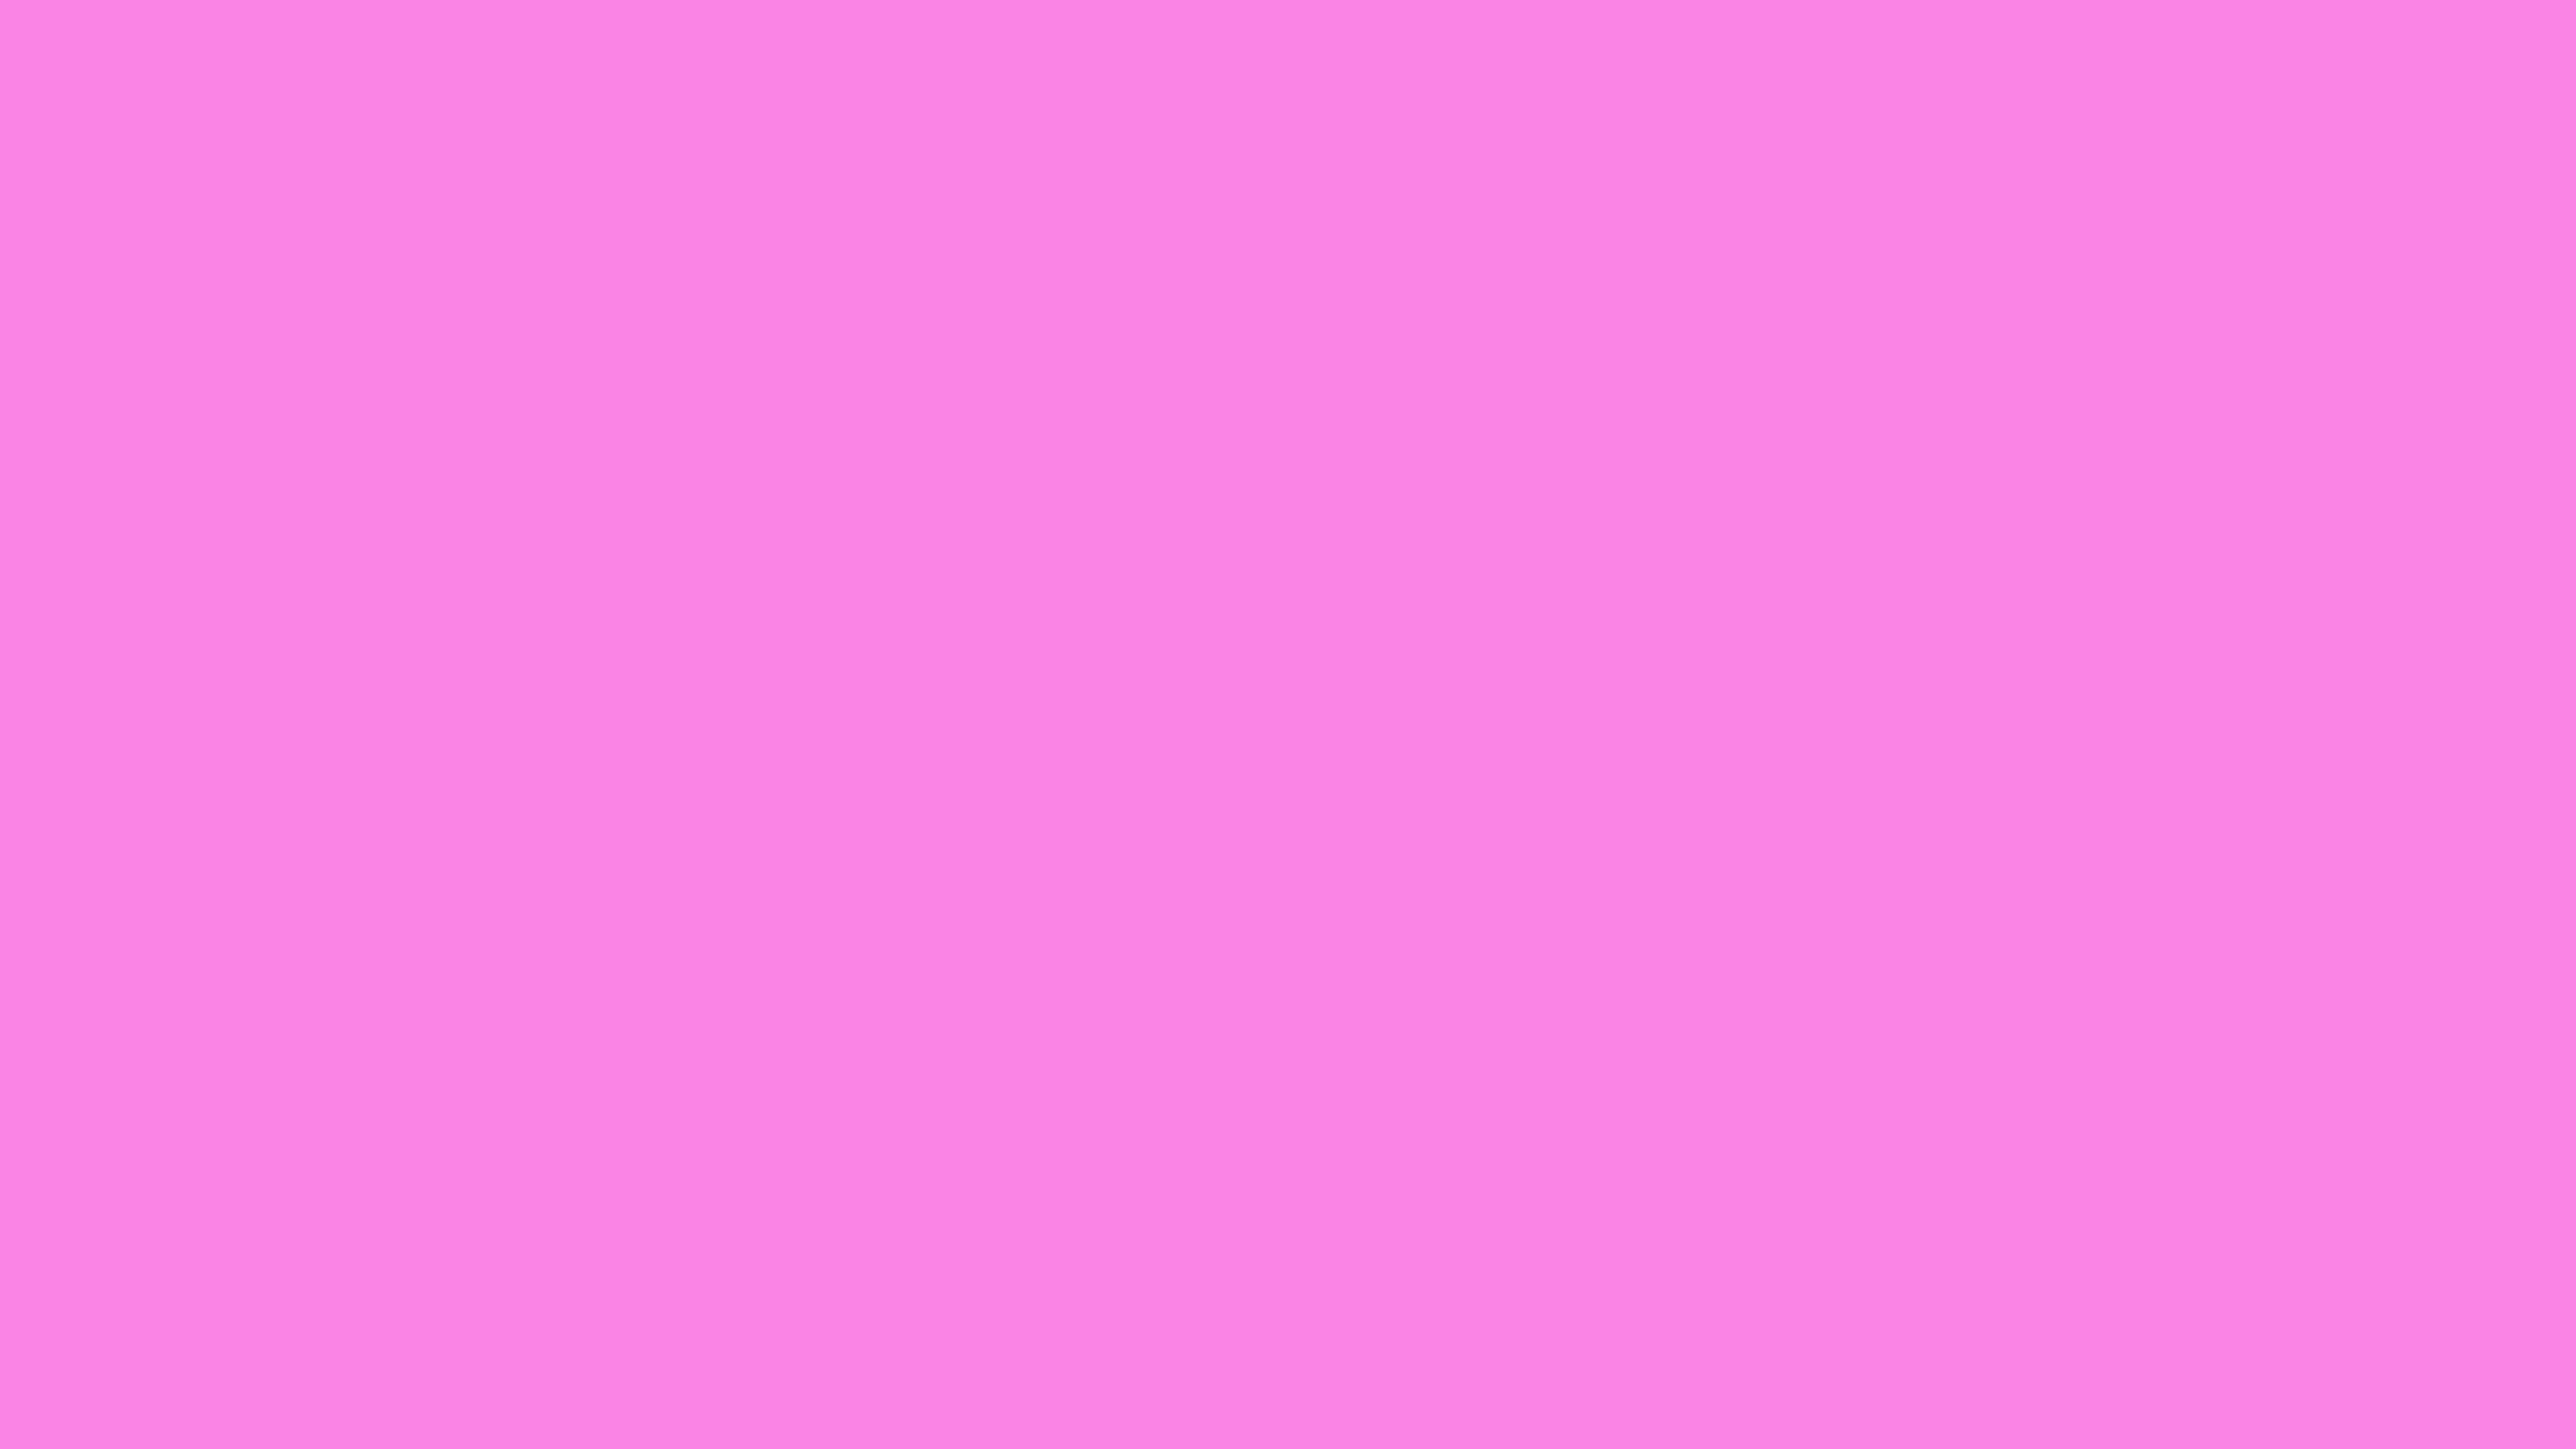 3840x2160 Pale Magenta Solid Color Background